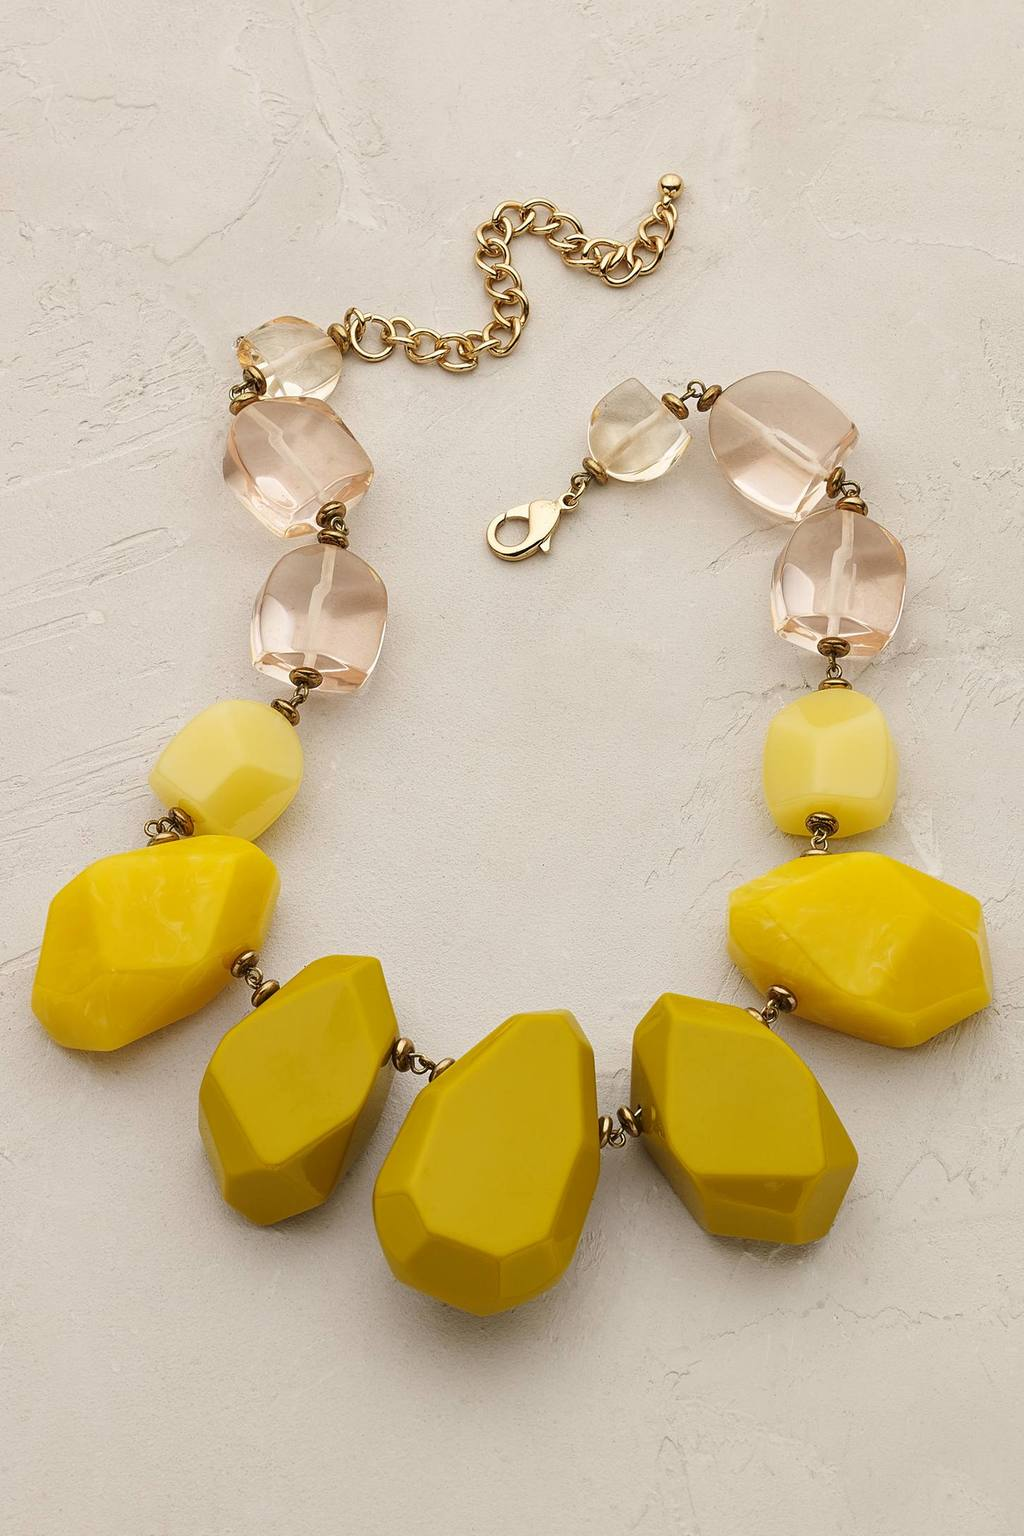 Novara Beaded Necklace - secondary colour: ivory/cream; predominant colour: yellow; occasions: casual; length: mid; size: large/oversized; material: chain/metal; finish: plain; embellishment: beading; multicoloured: multicoloured; style: bead; season: a/w 2016; wardrobe: highlight